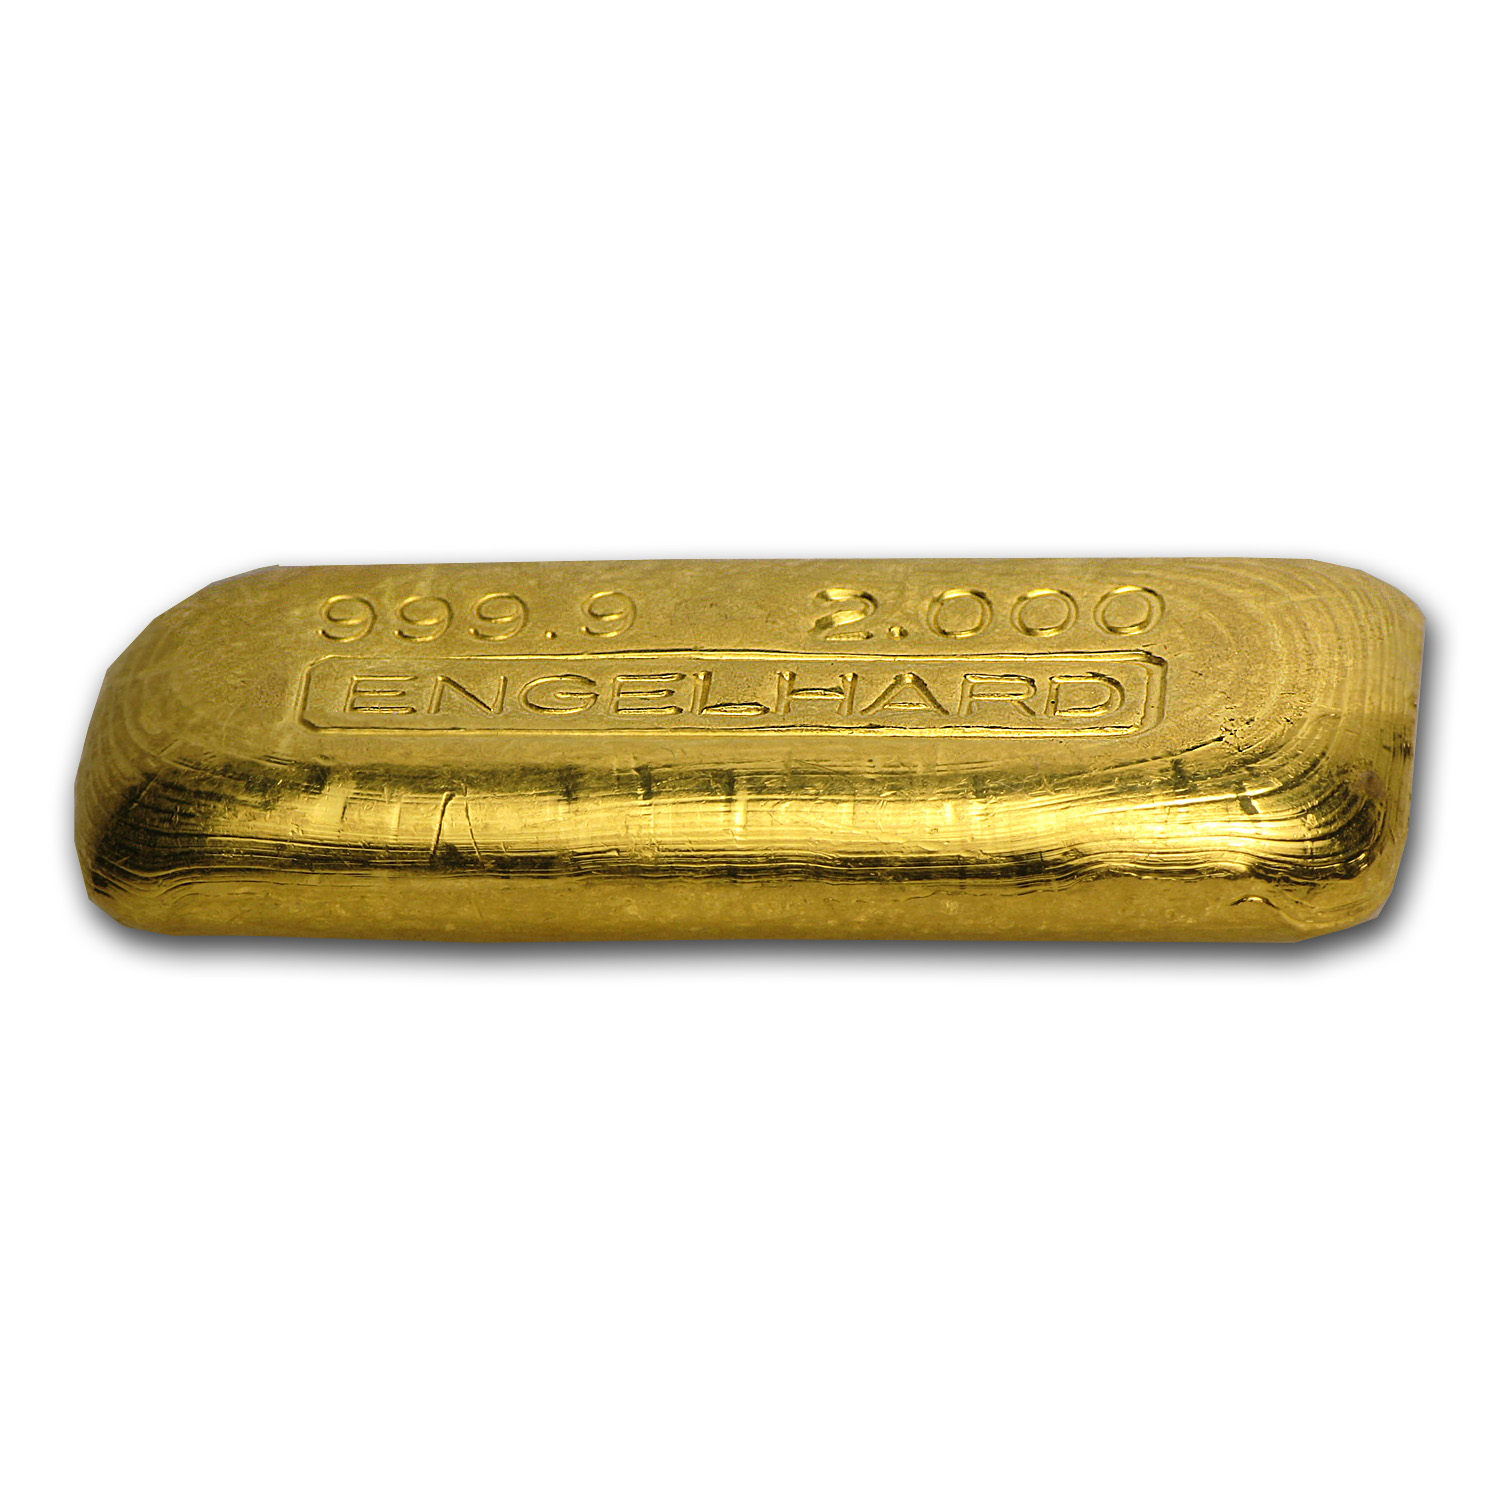 2 oz Gold Bar - Engelhard (Poured, .9999 Fine)